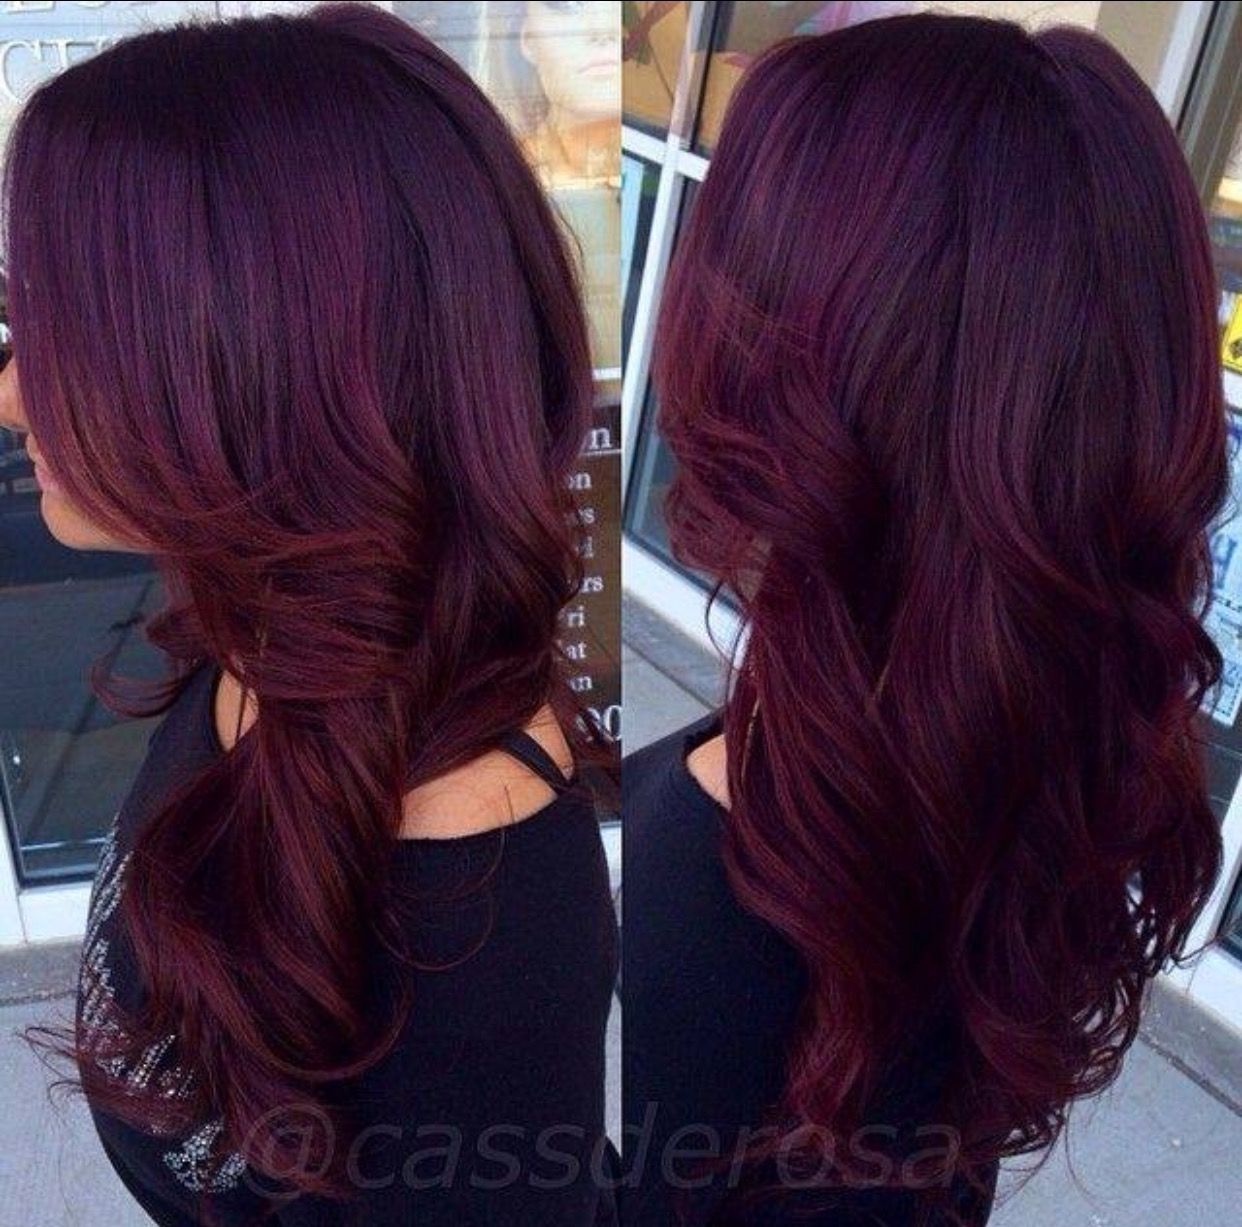 Absolutely Love The Burgundy Hair Color Layered Hairstyles